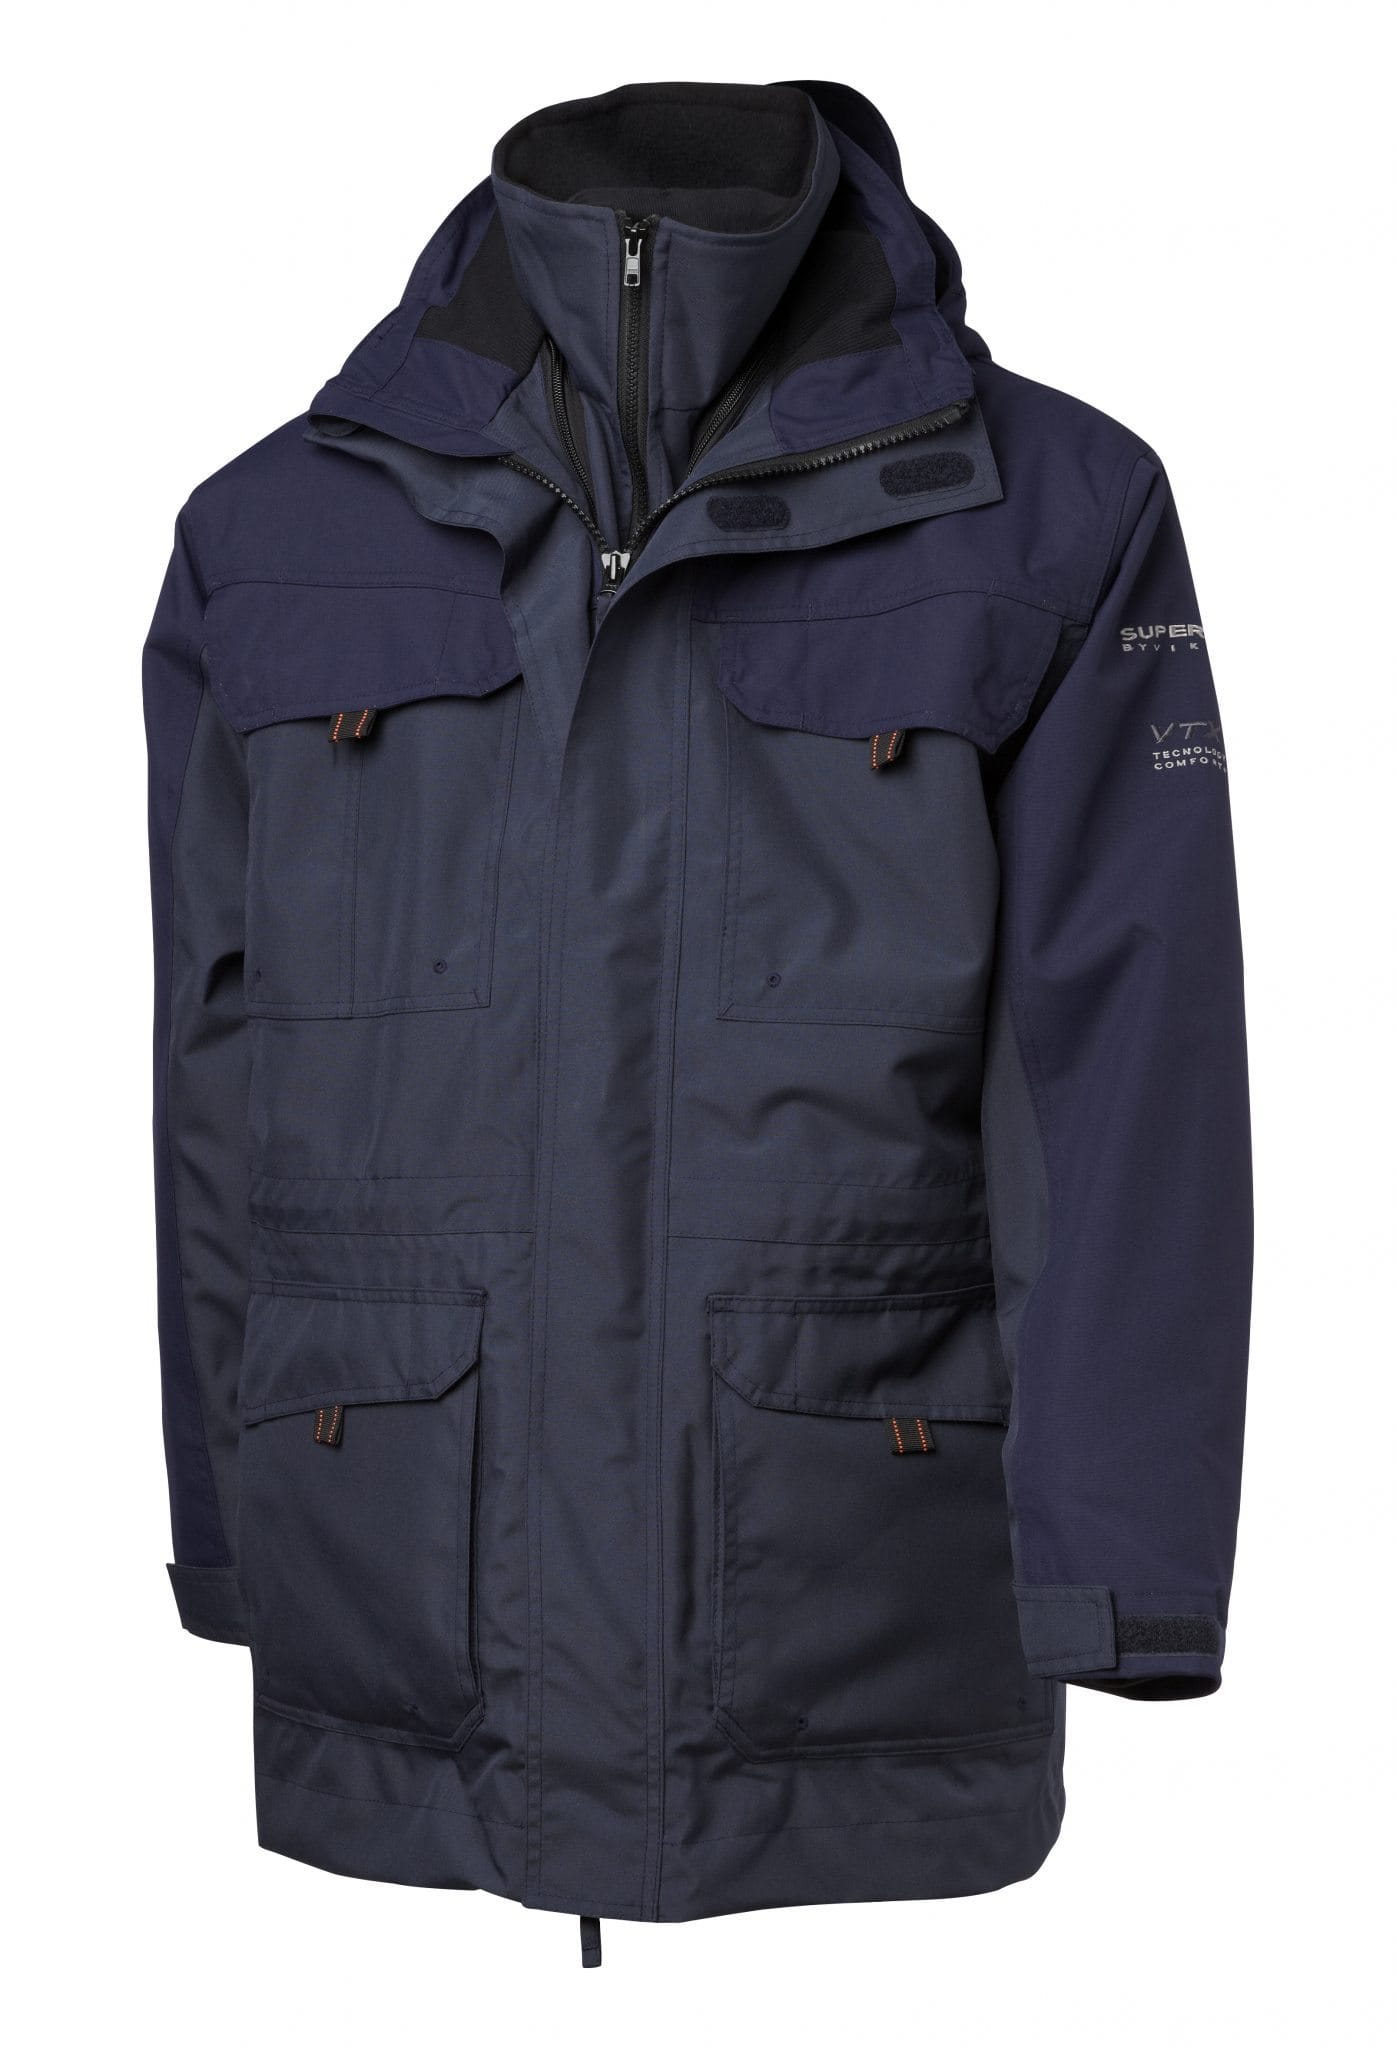 Parka jacket Superior 3 in 1